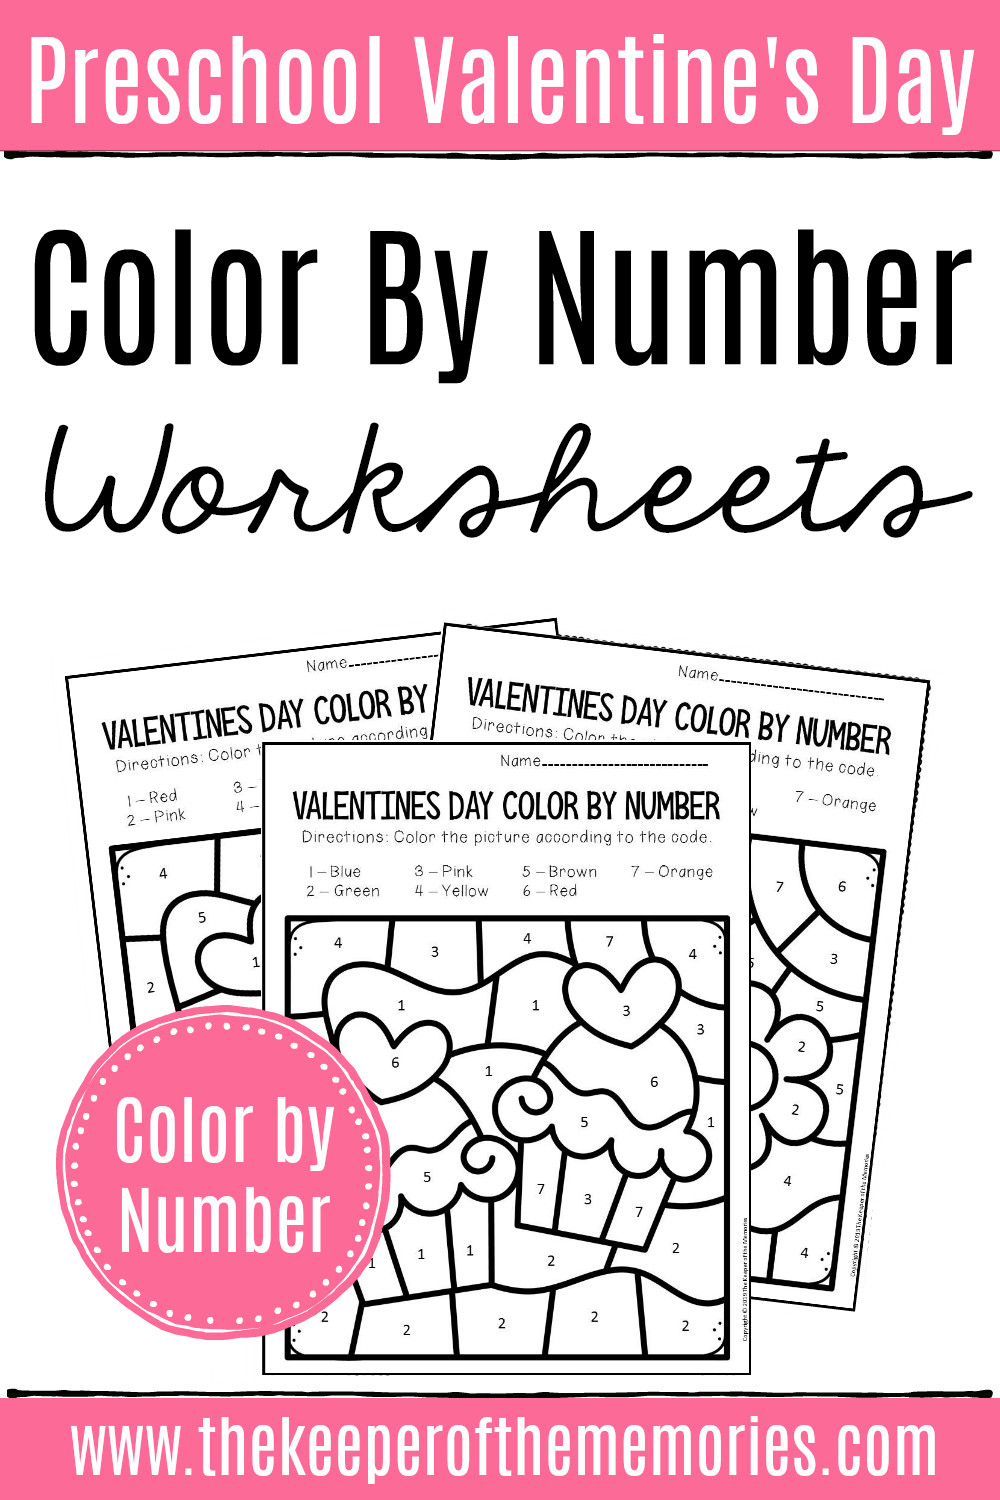 Valentines Day Color by Number Preschool Worksheets